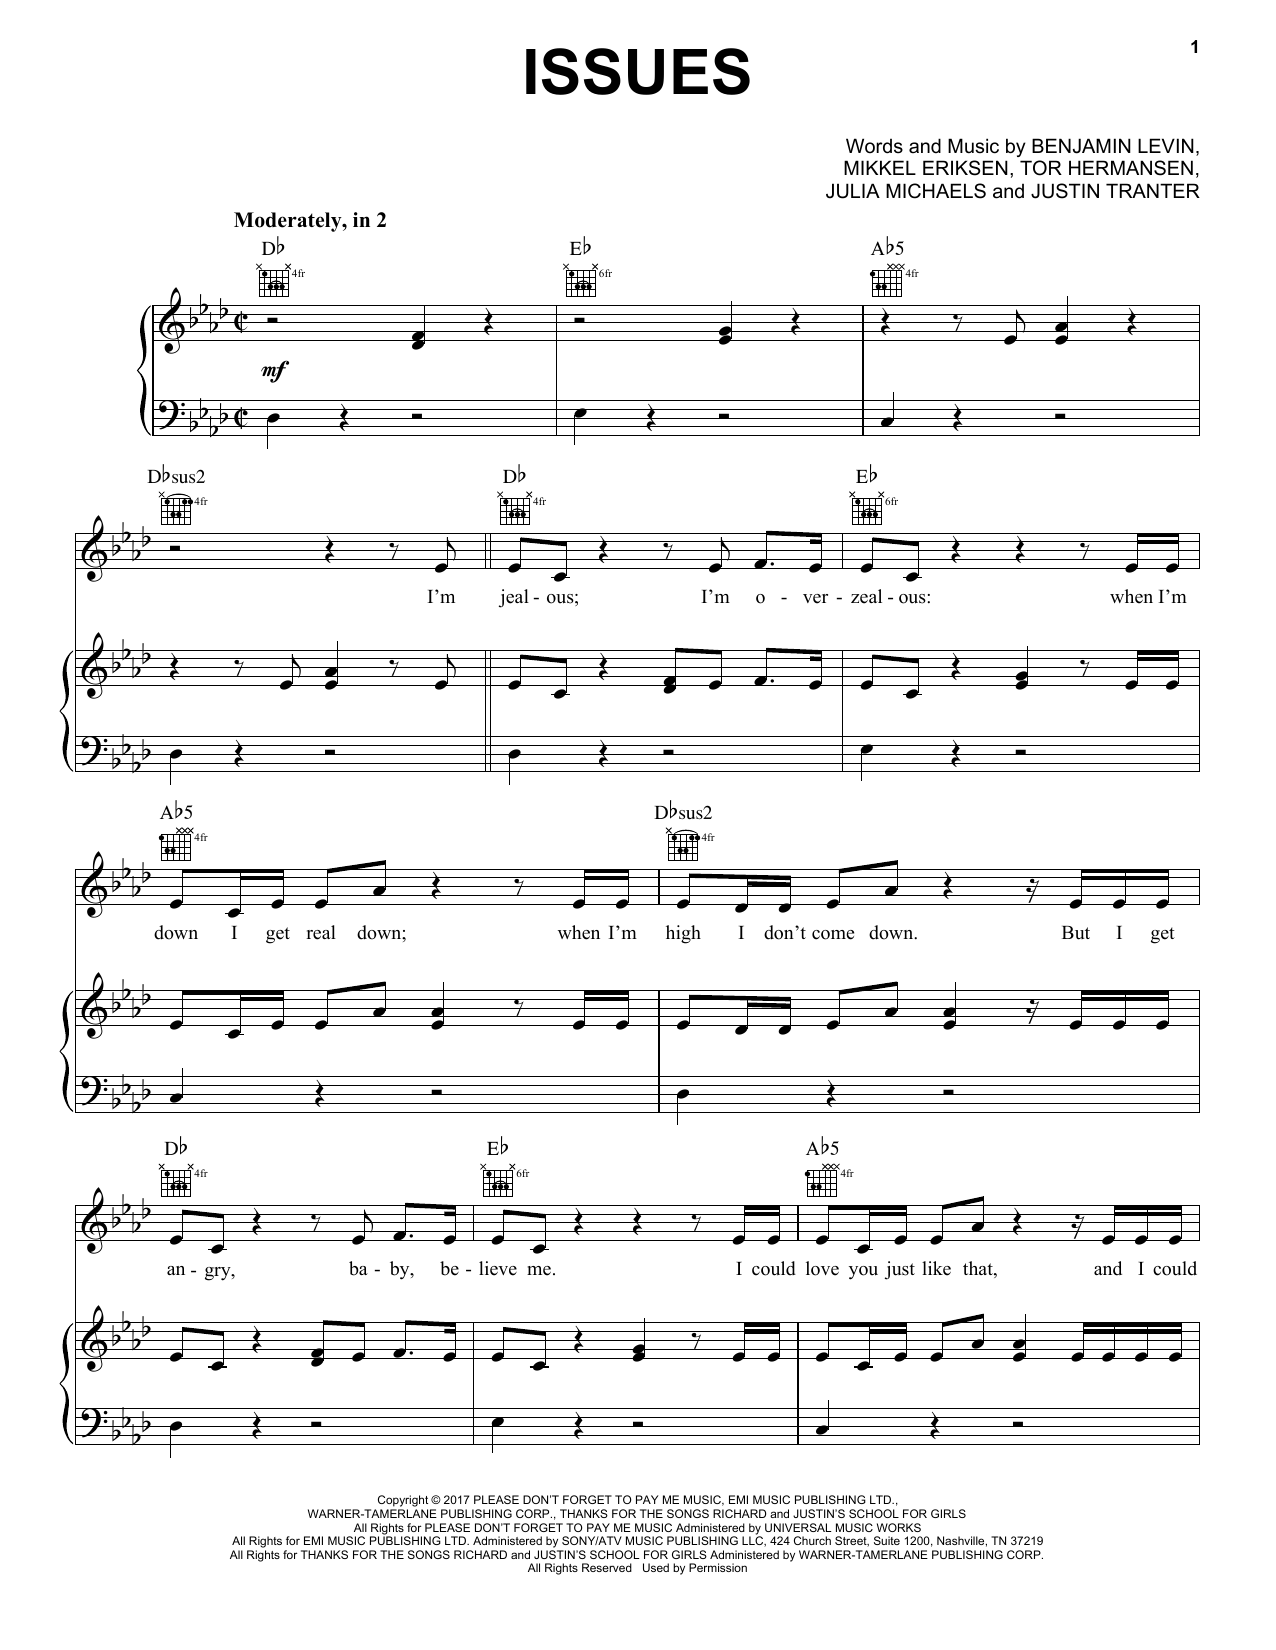 Pentatonix Issues sheet music notes and chords